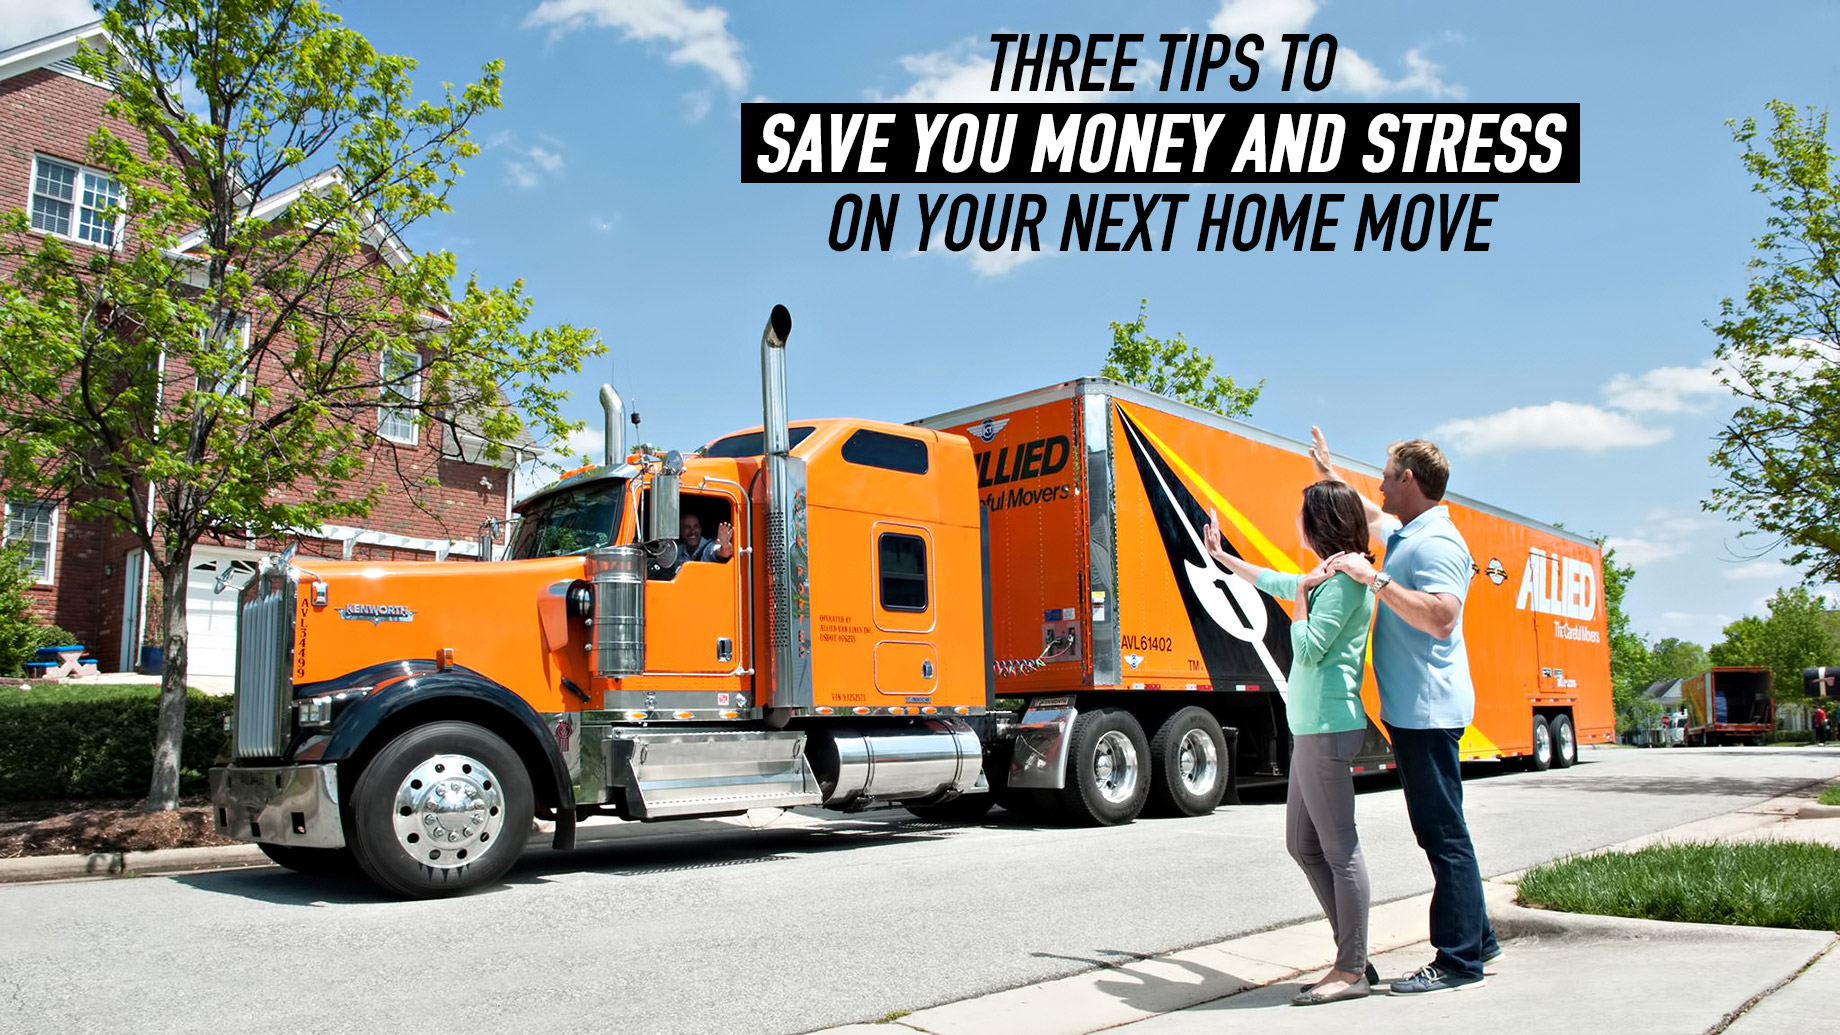 Three Tips to Save You Money and Stress on Your Next Home Move